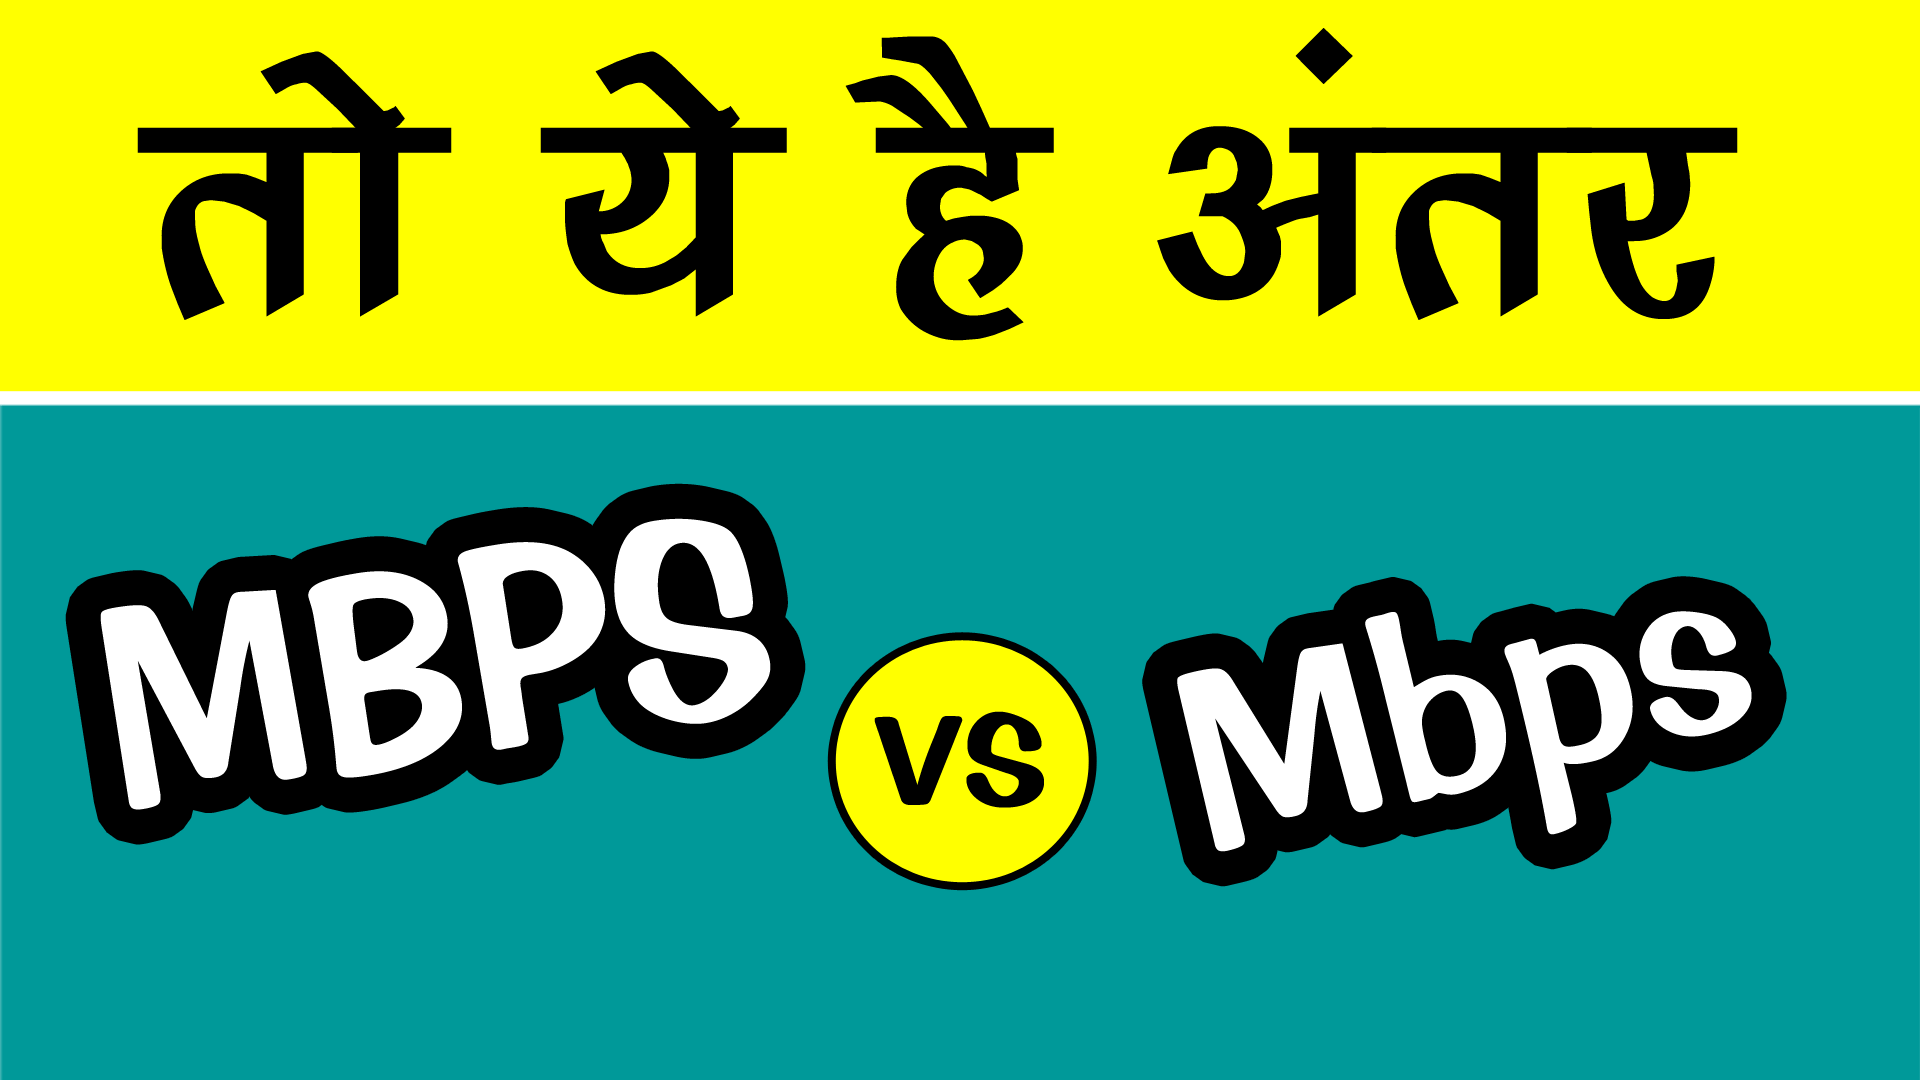 difference between Mbps vs MBPS